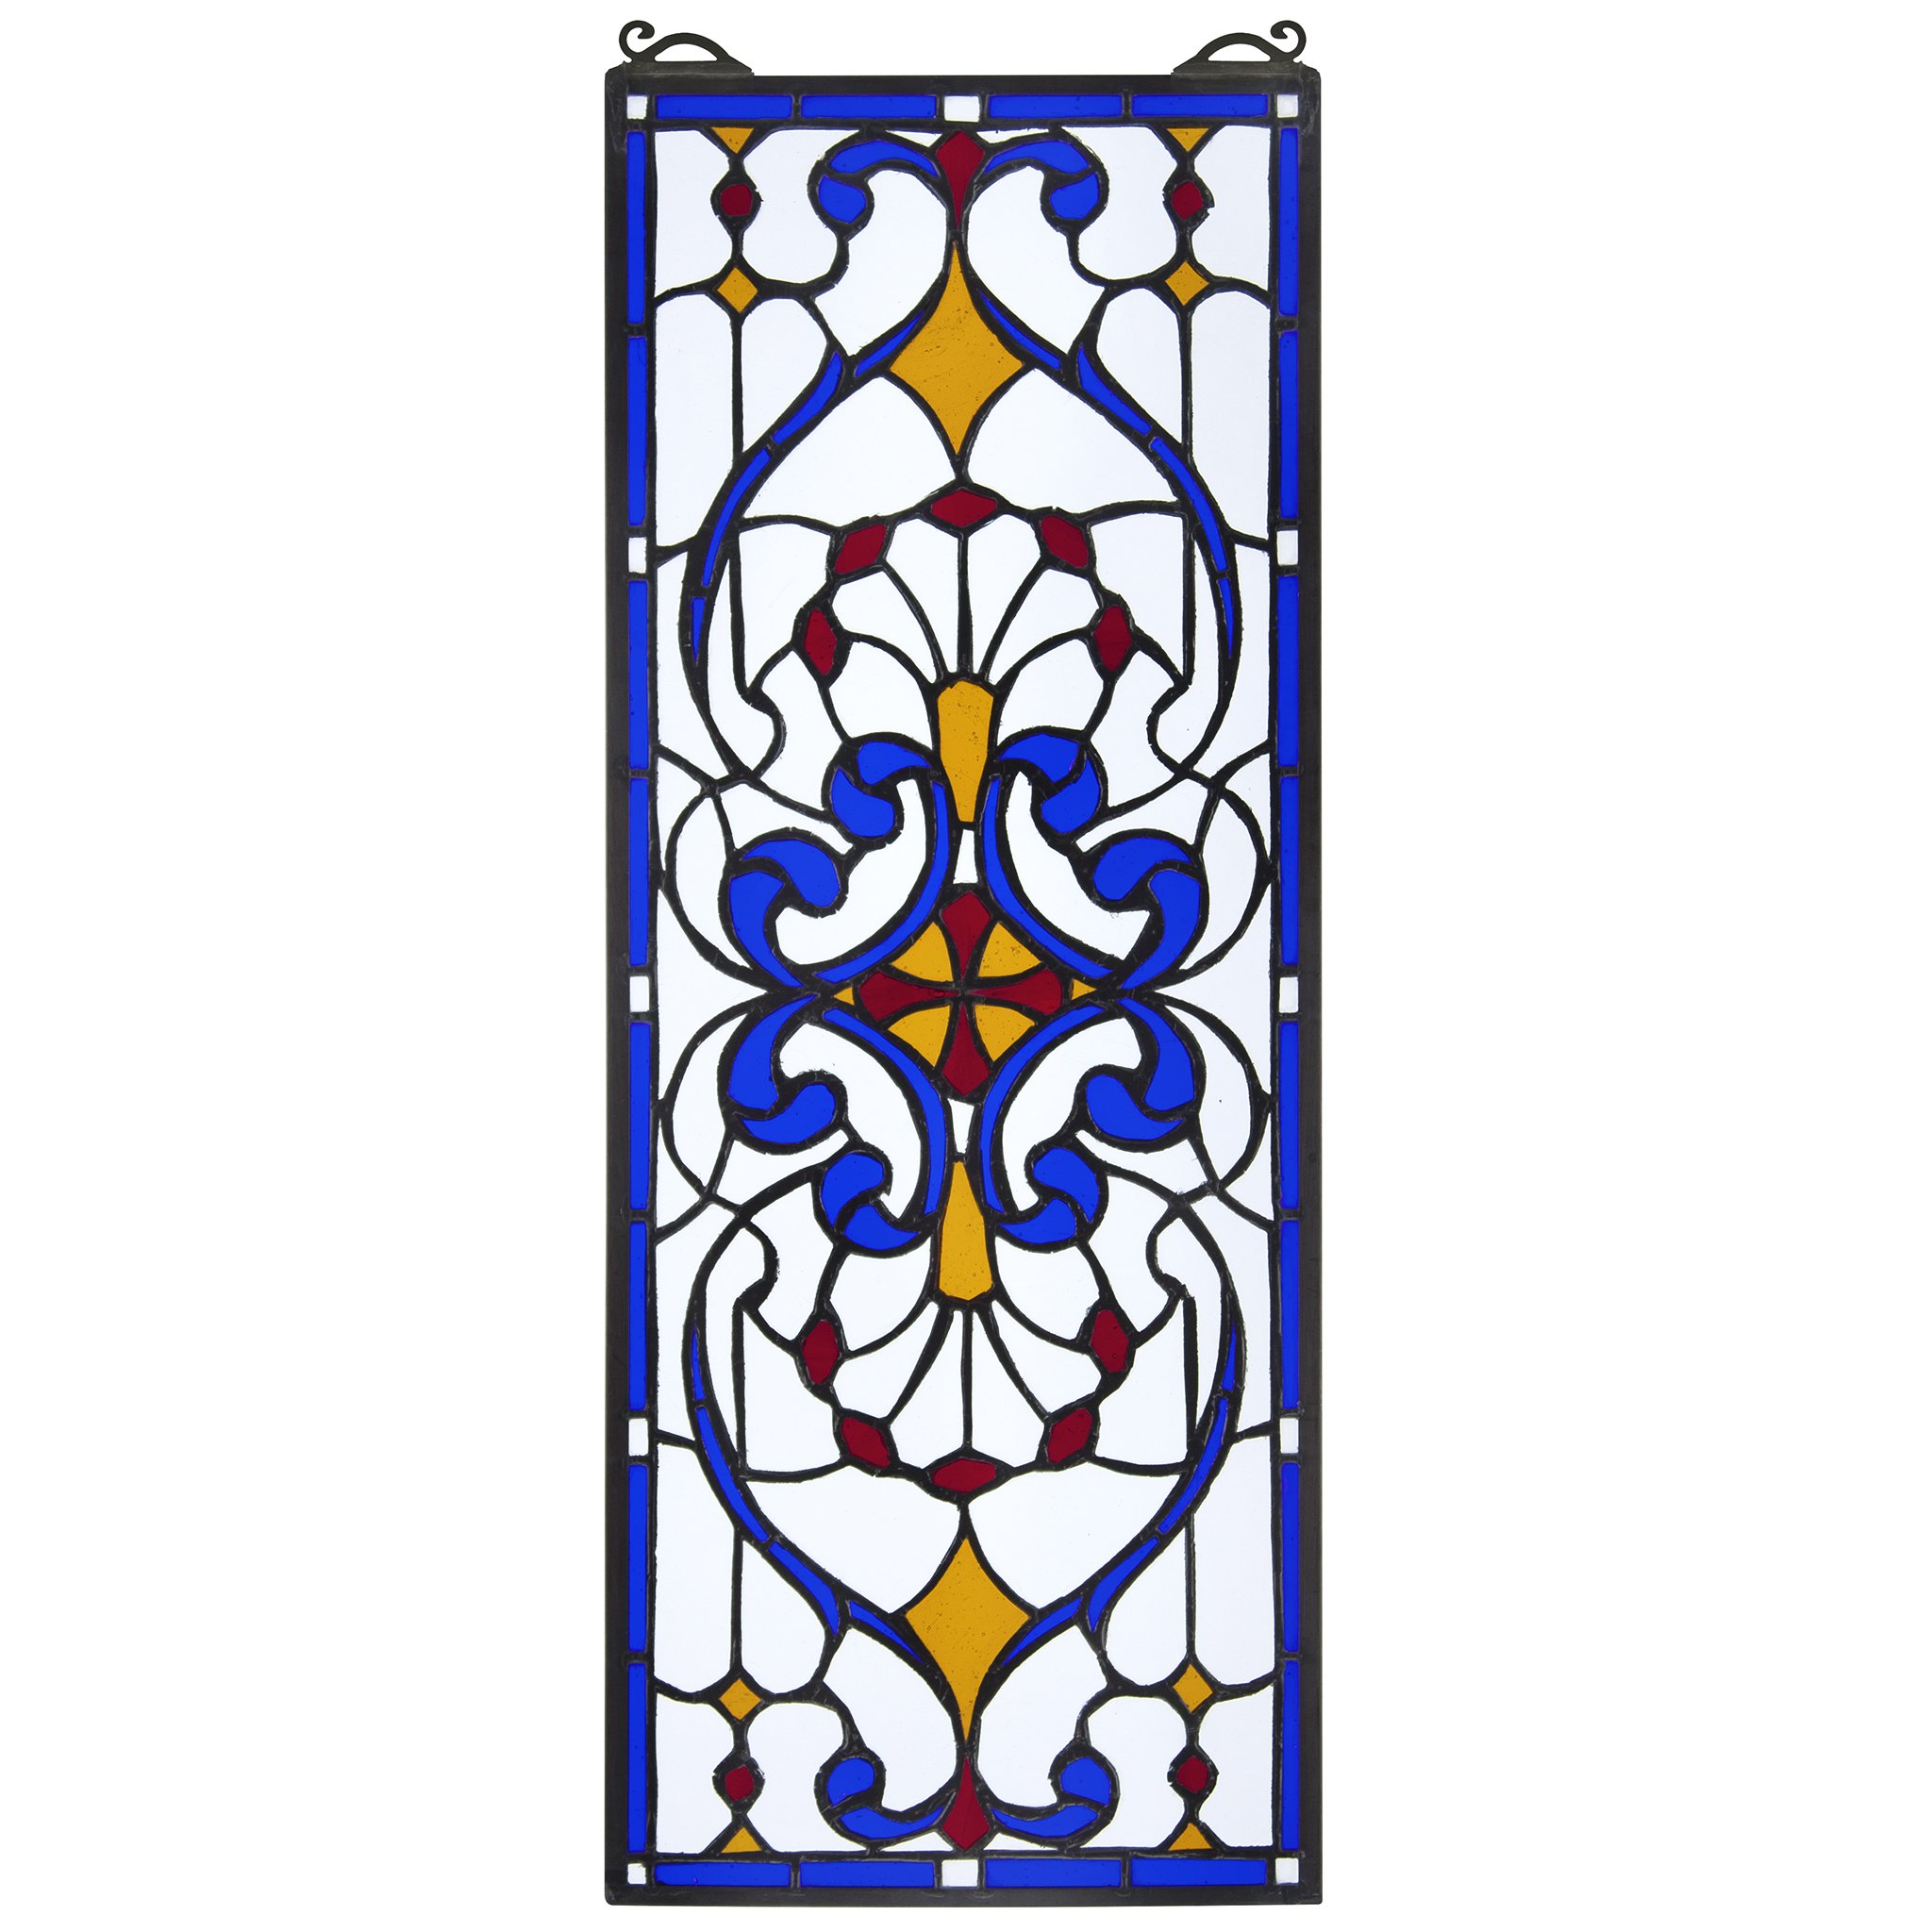 Stained Glass Panel - Hyde Street Stained Glass Window Hangings - Window Treatments